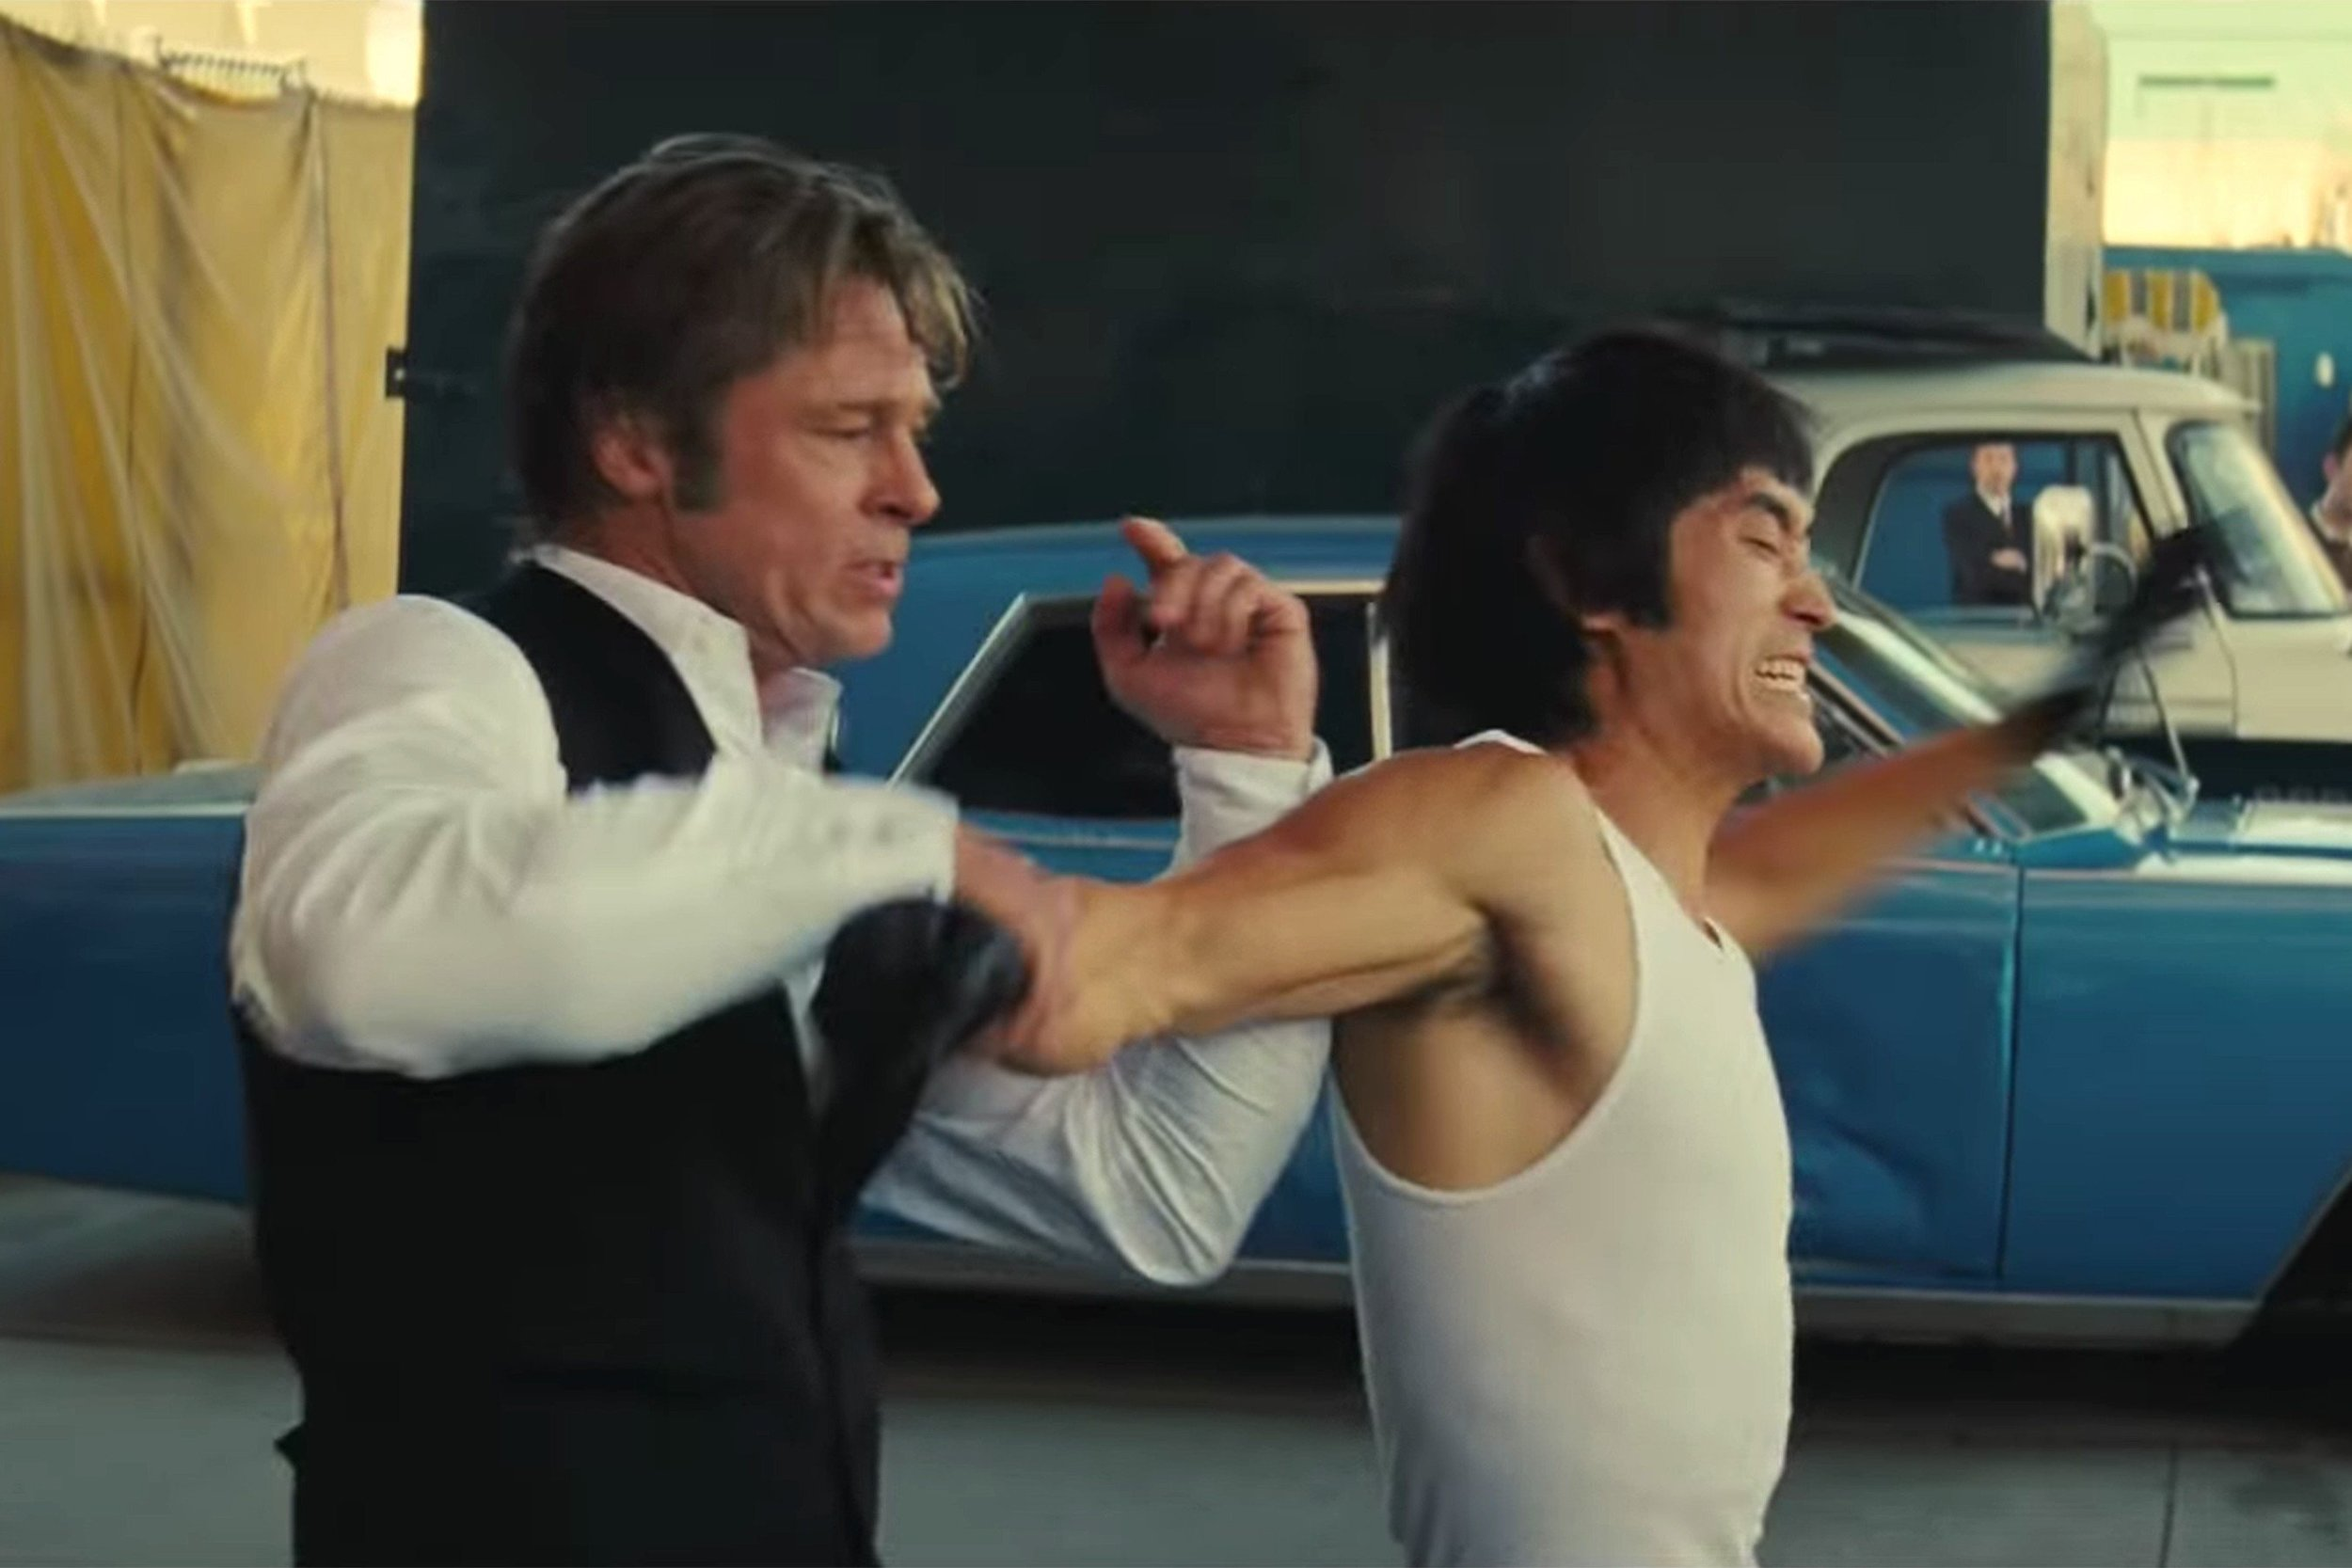 A still from the controversial fight scene with Cliff Booth and Bruce Lee - 1968 Lincoln Continental in the background